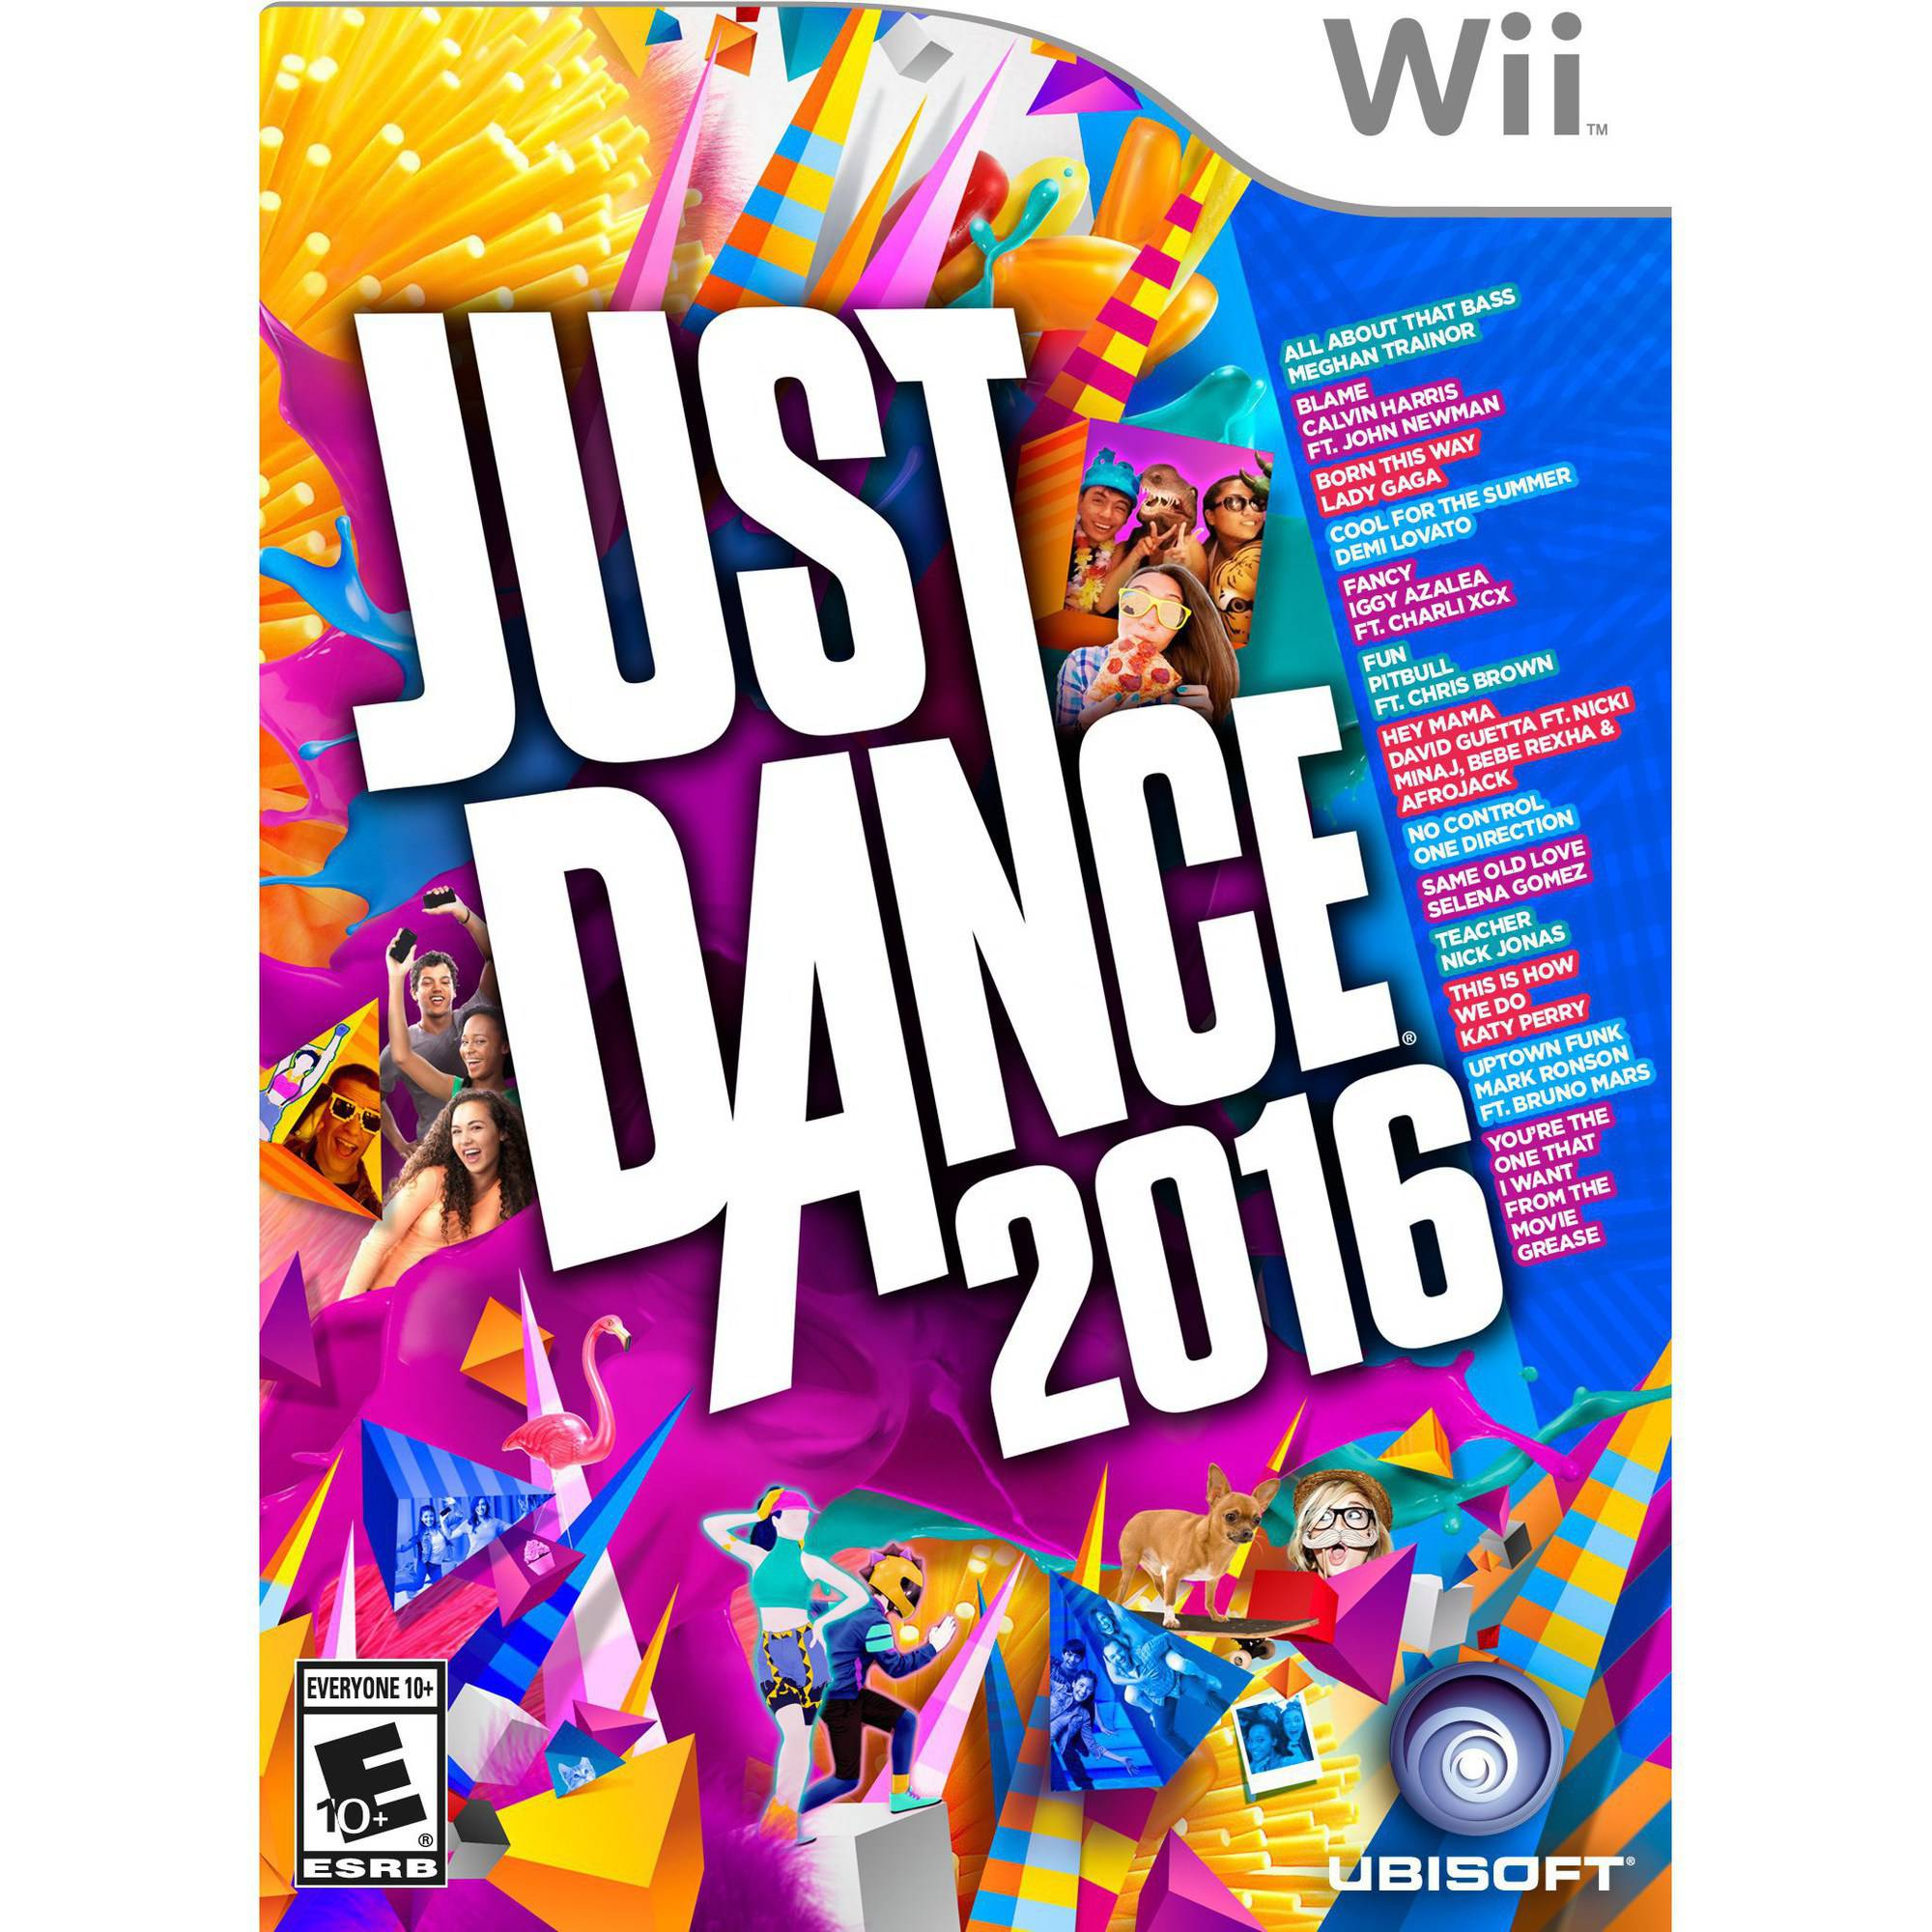 Just Dance 2016 (Wii) - Pre-Owned